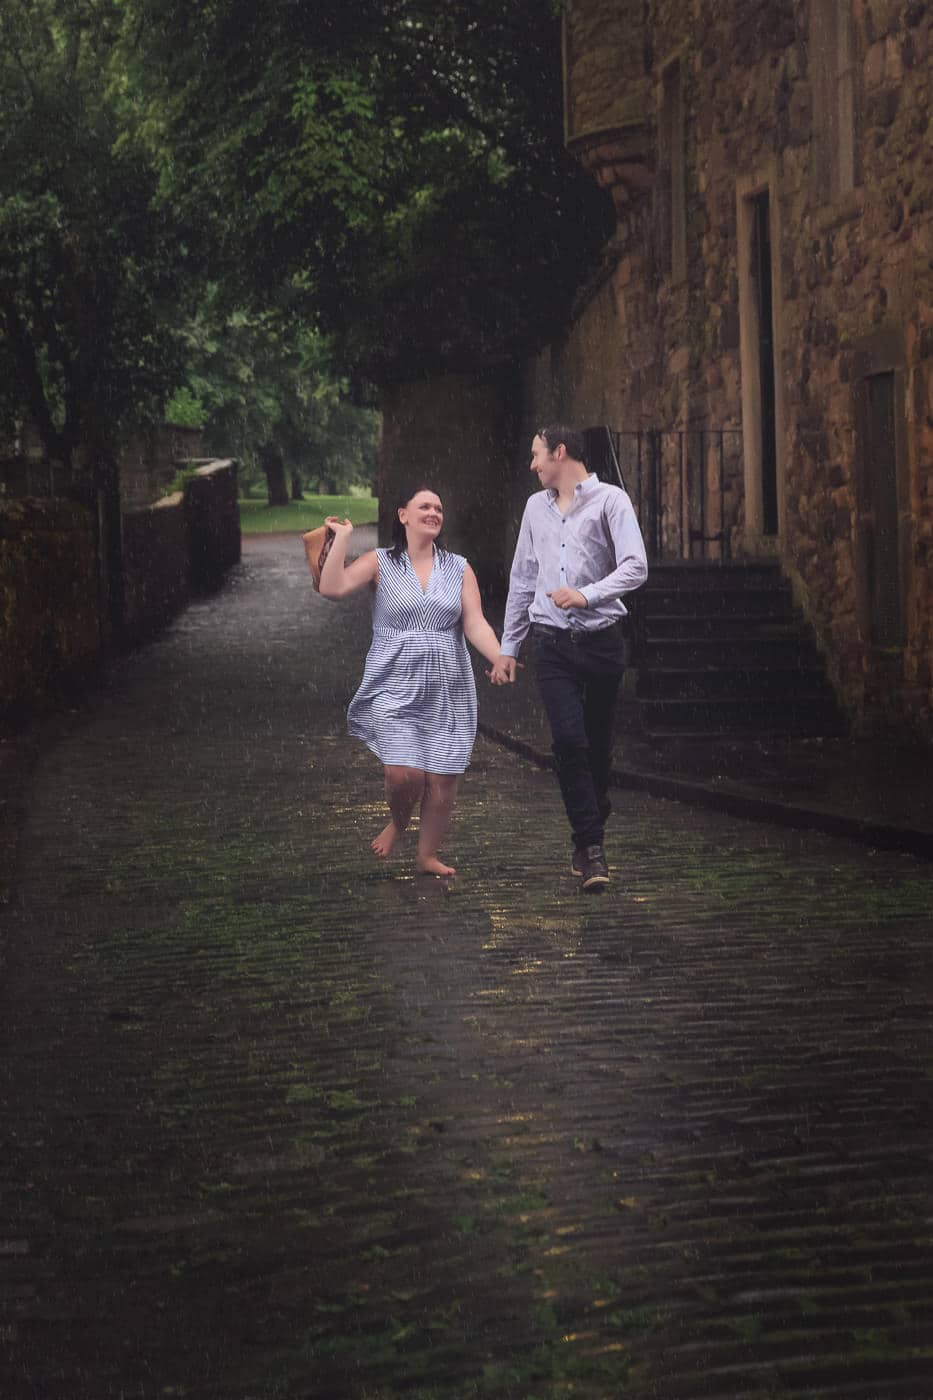 The couple is running in the rain